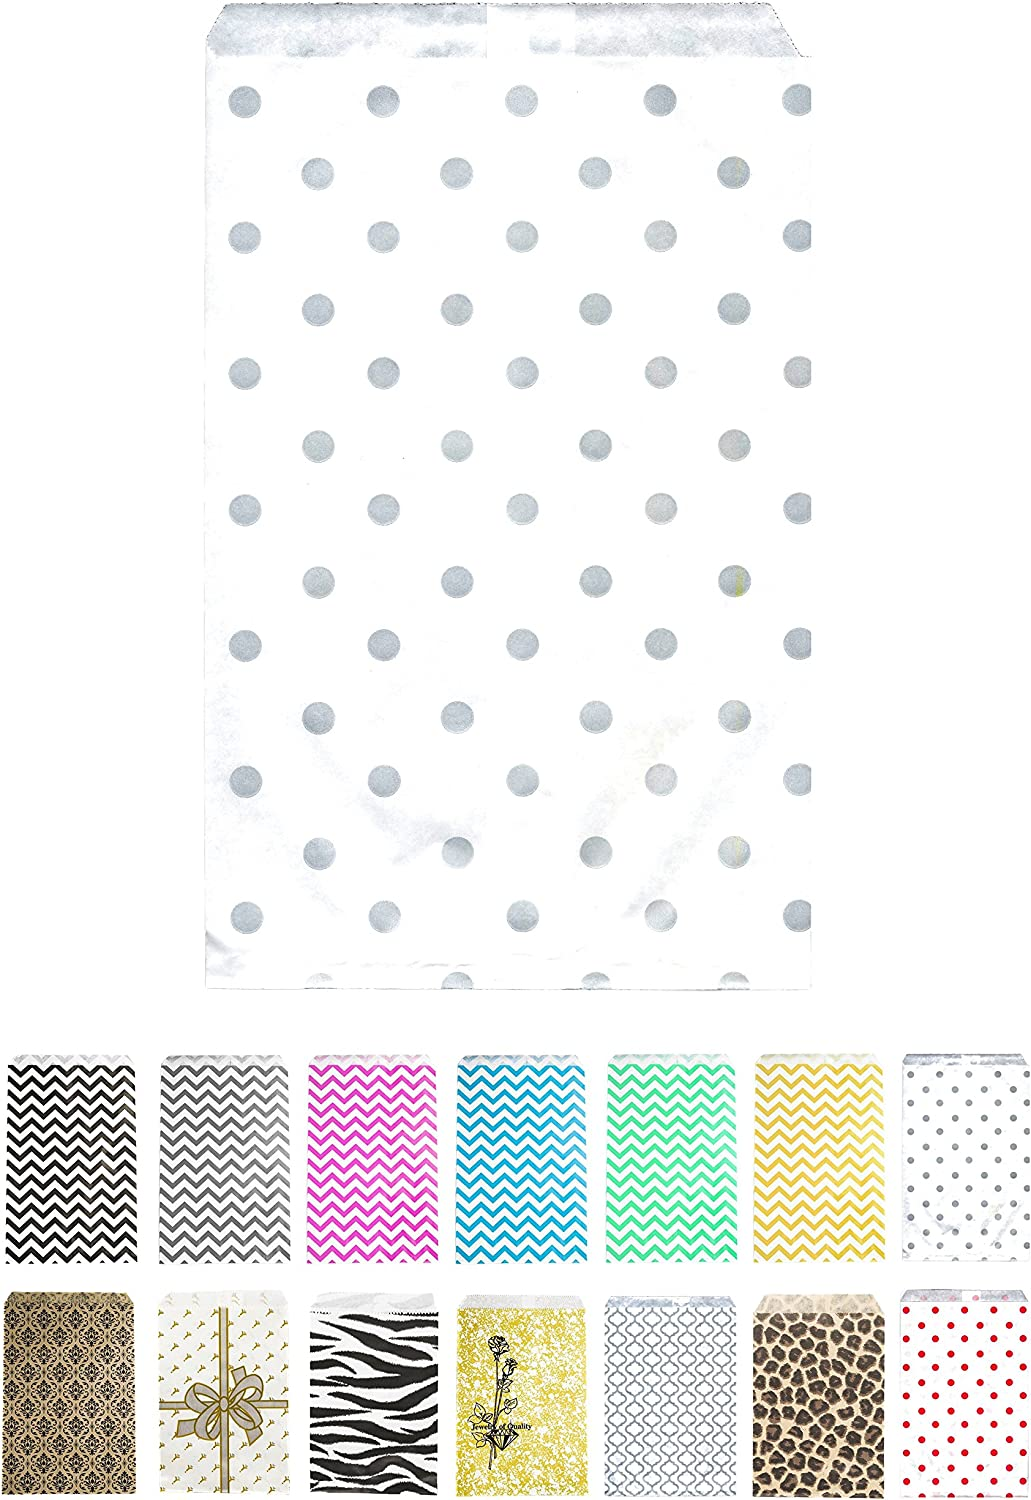 Novel Box® Silver Polka Dot Print Paper Gift Candy Jewelry Merchandise Bag Bundle 4X6